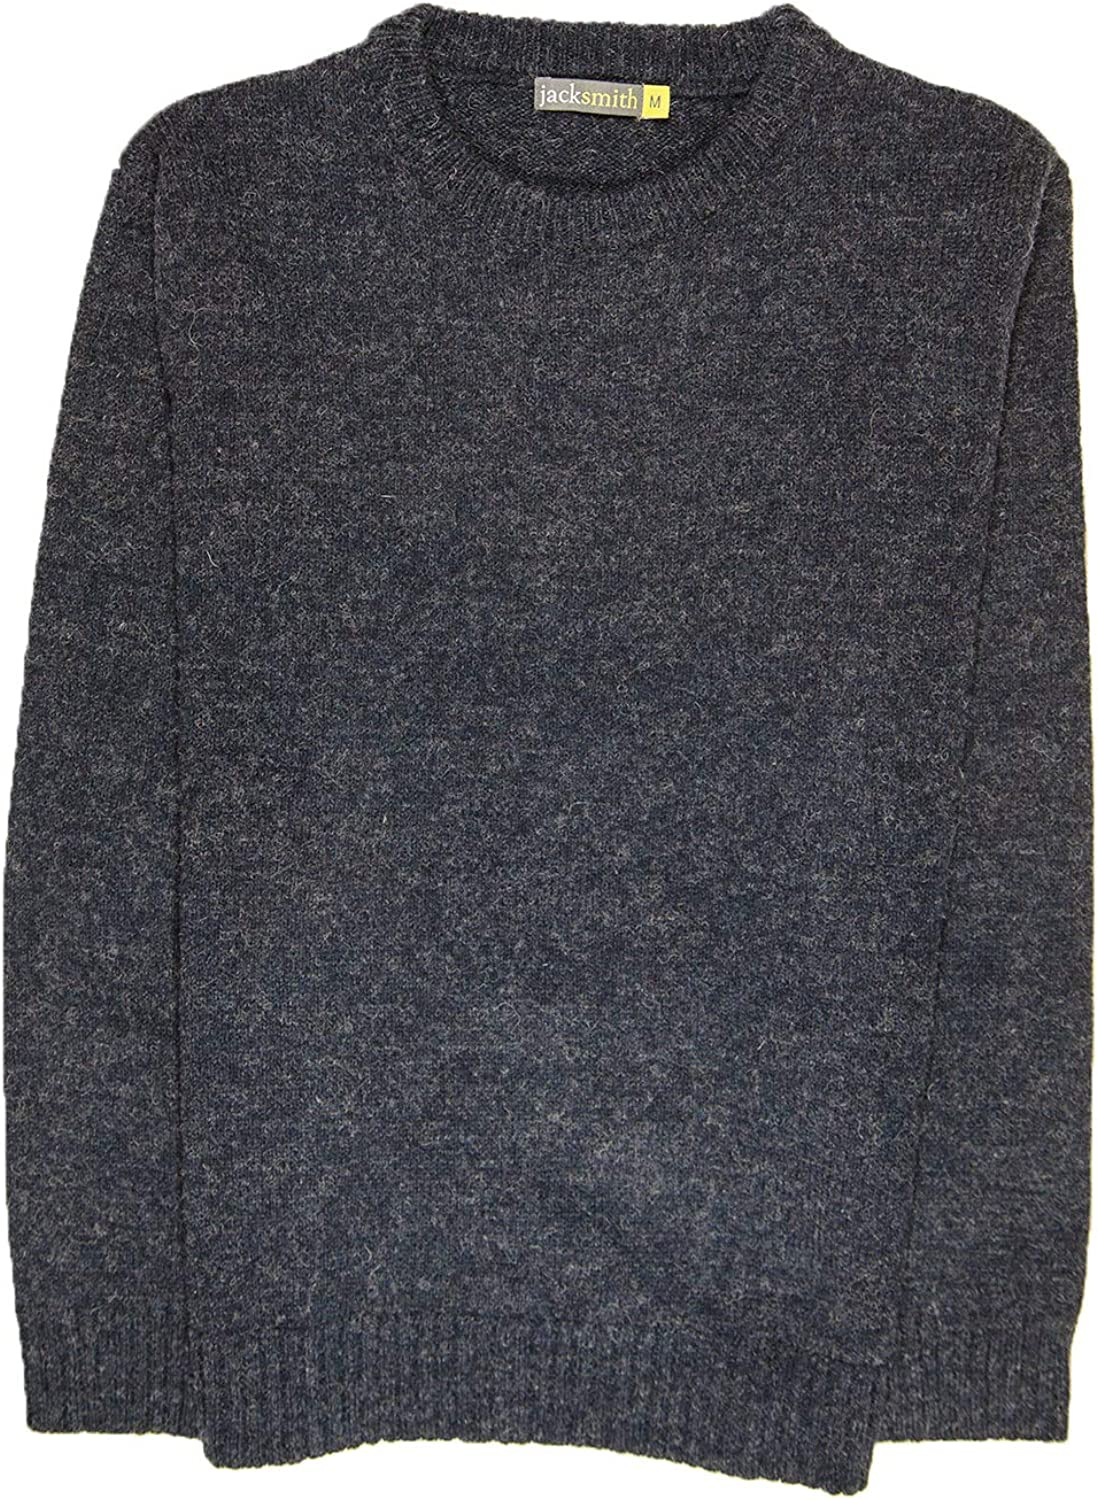 Boutique Retailer Mens Shetland Wool Crew Neck Cardigan Sweater Knitted Jumper Pullover